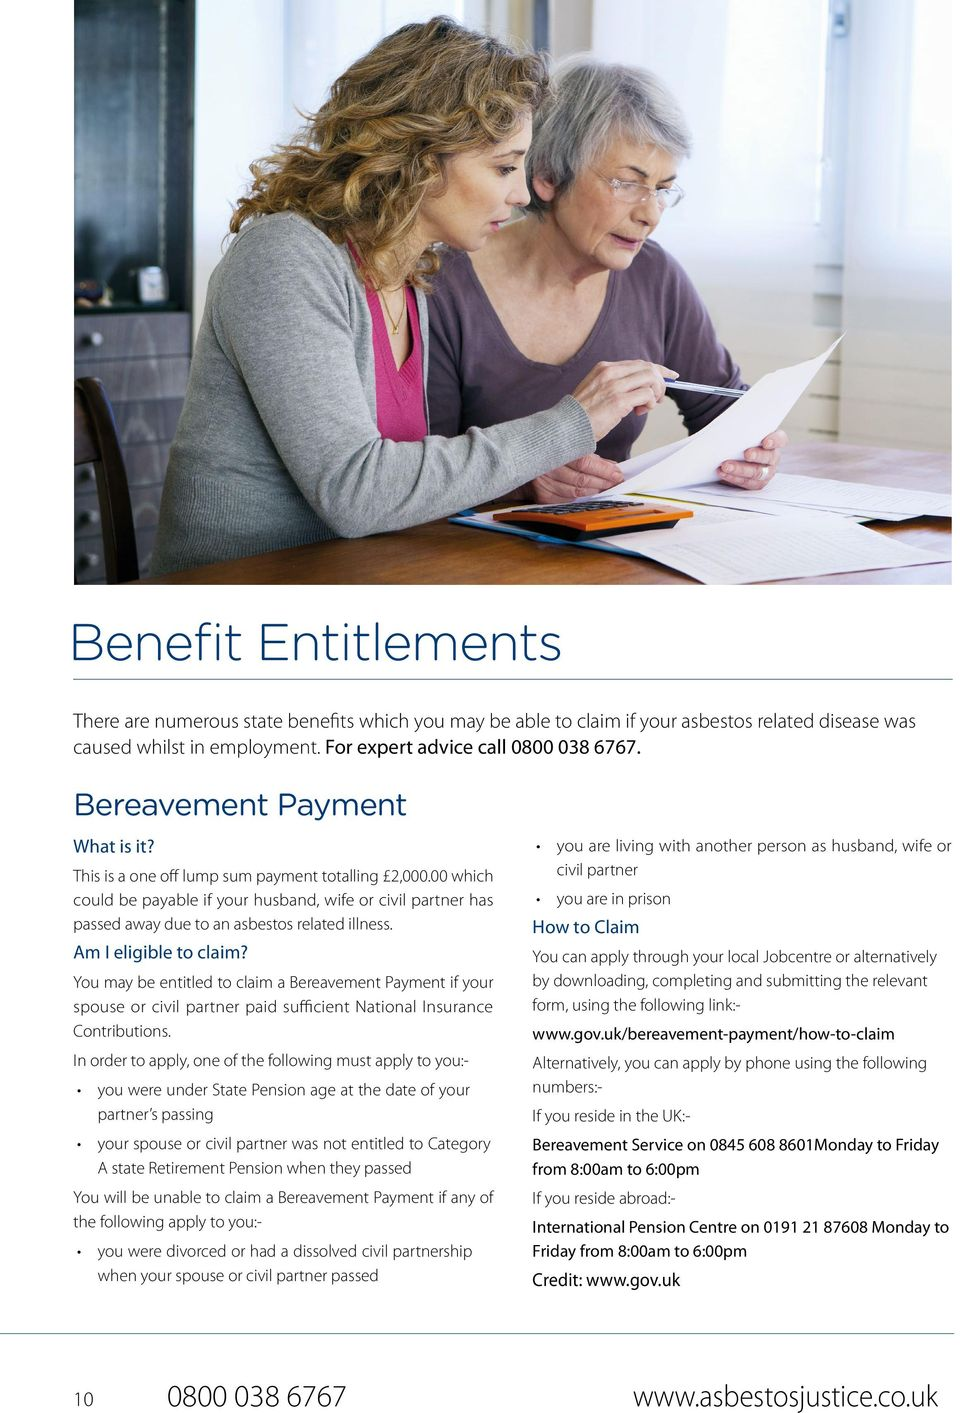 Am I eligible to claim? You may be entitled to claim a Bereavement Payment if your spouse or civil partner paid sufficient National Insurance Contributions.